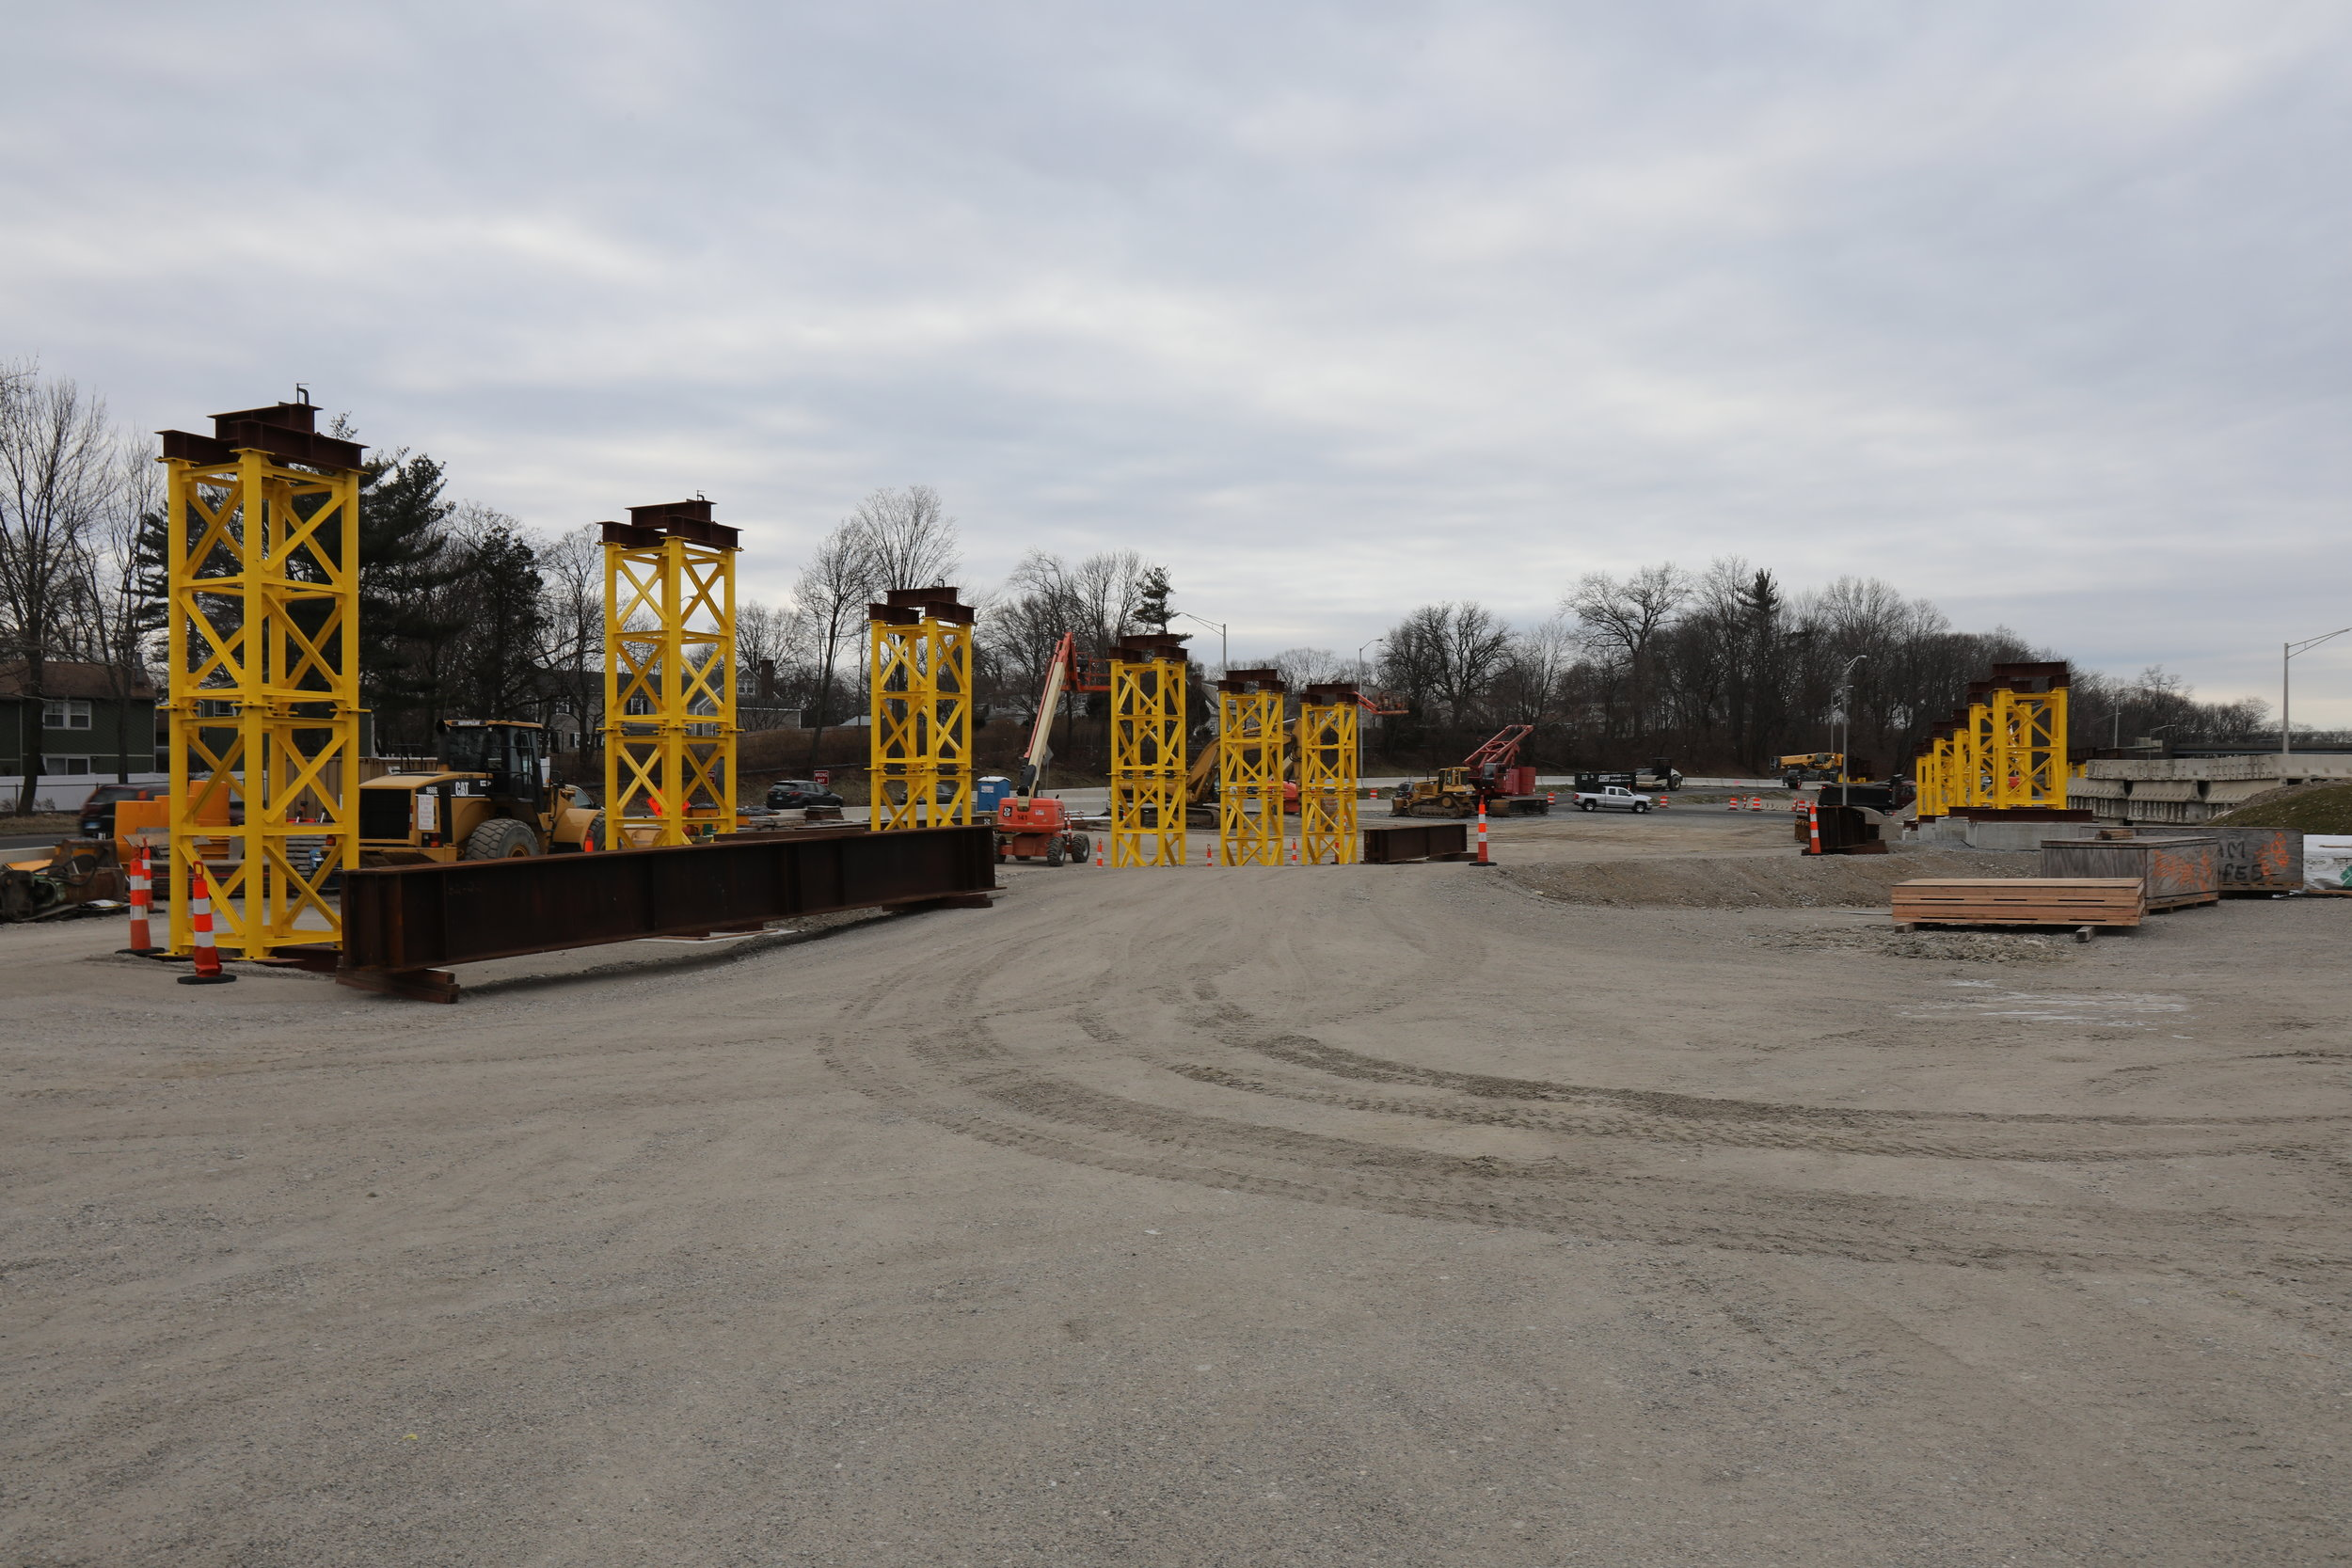 Temporary support system of Span 2 effectively ready for the placement of girder steel.  Taken on 1/12/19 by Pete Venoutsos